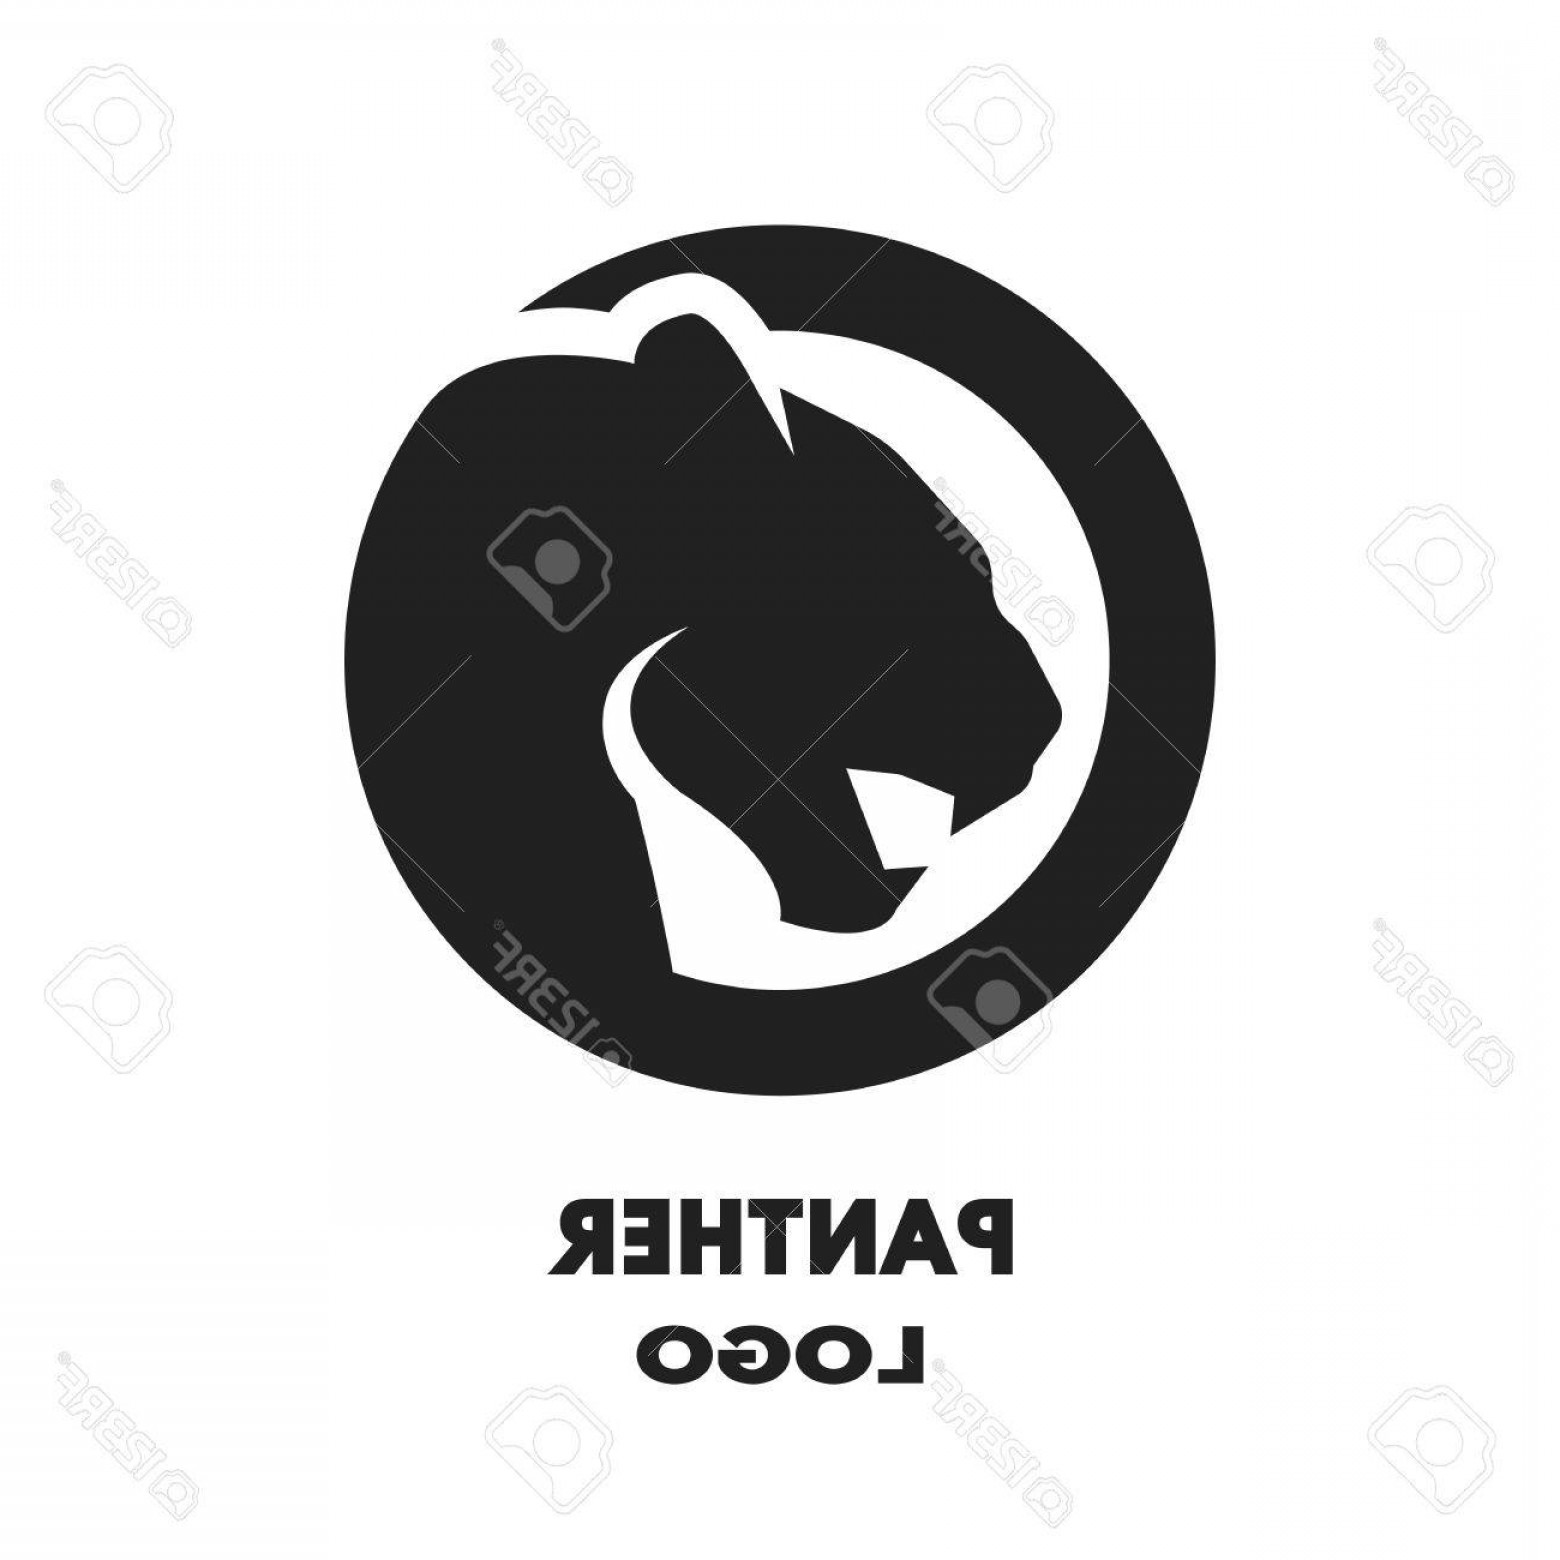 Panther Vector: Photostock Vector Silhouette Of The Panther Monochrome Vector Illustration